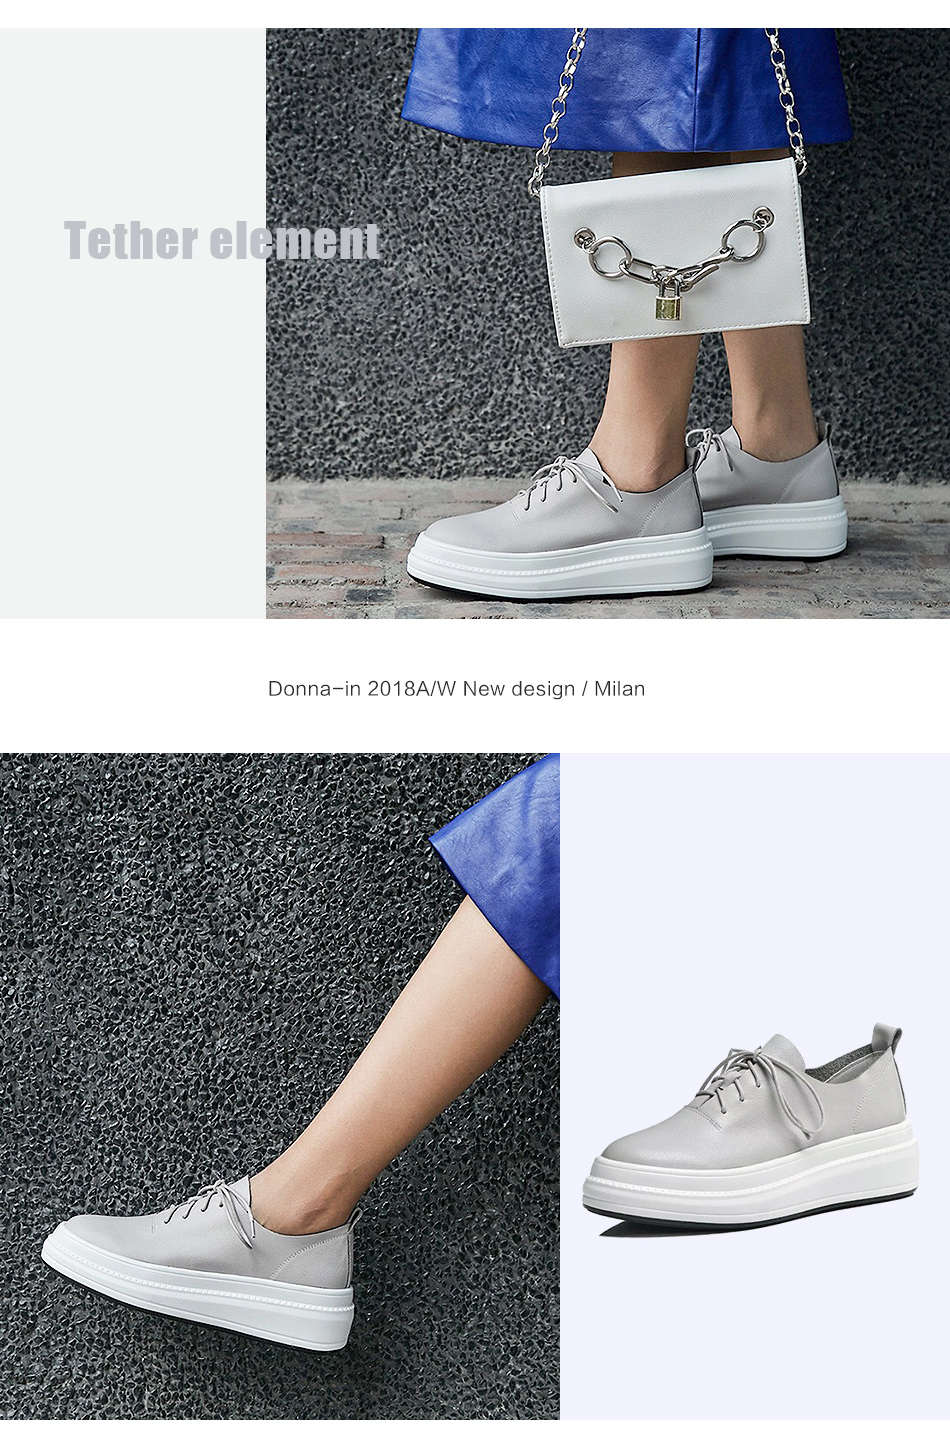 Donna-in Women Flats Shoes Platform Sneakers Shoes Genuine Leather Spring Fashion Sneakers Creepers Lace-up Comfortable Shoes (9)